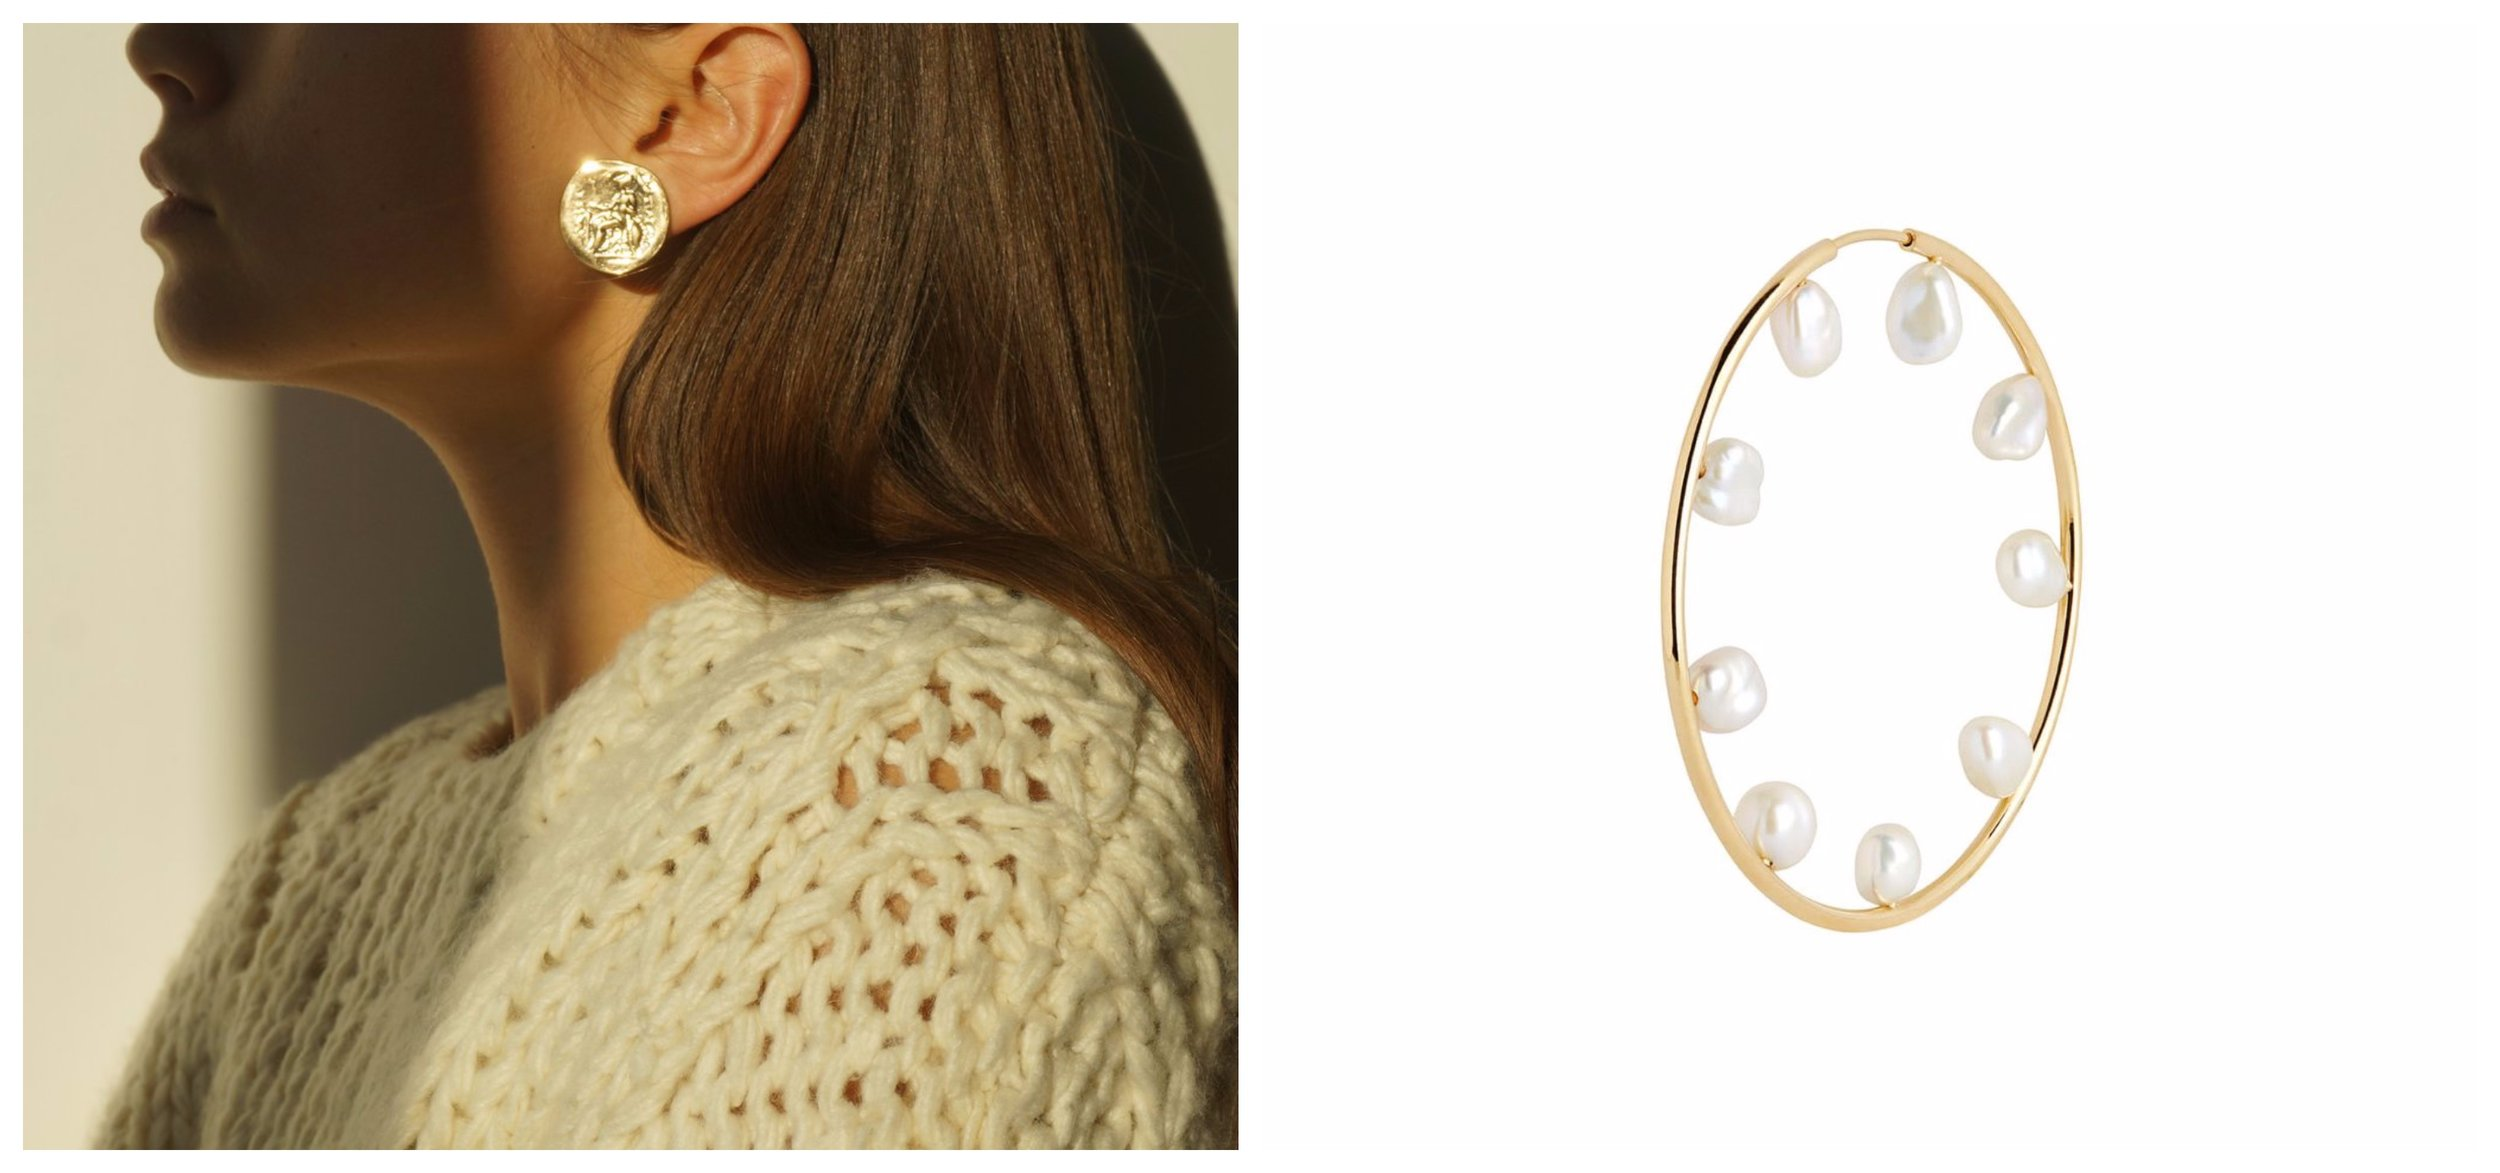 Left: Egyptian Coin Earrings from Marble Hive, buy them   here.     Photo: Marble Hive. Right: Baroque 50 Hoop from Maria Black, buy them   here.     Photo: Maria Black.